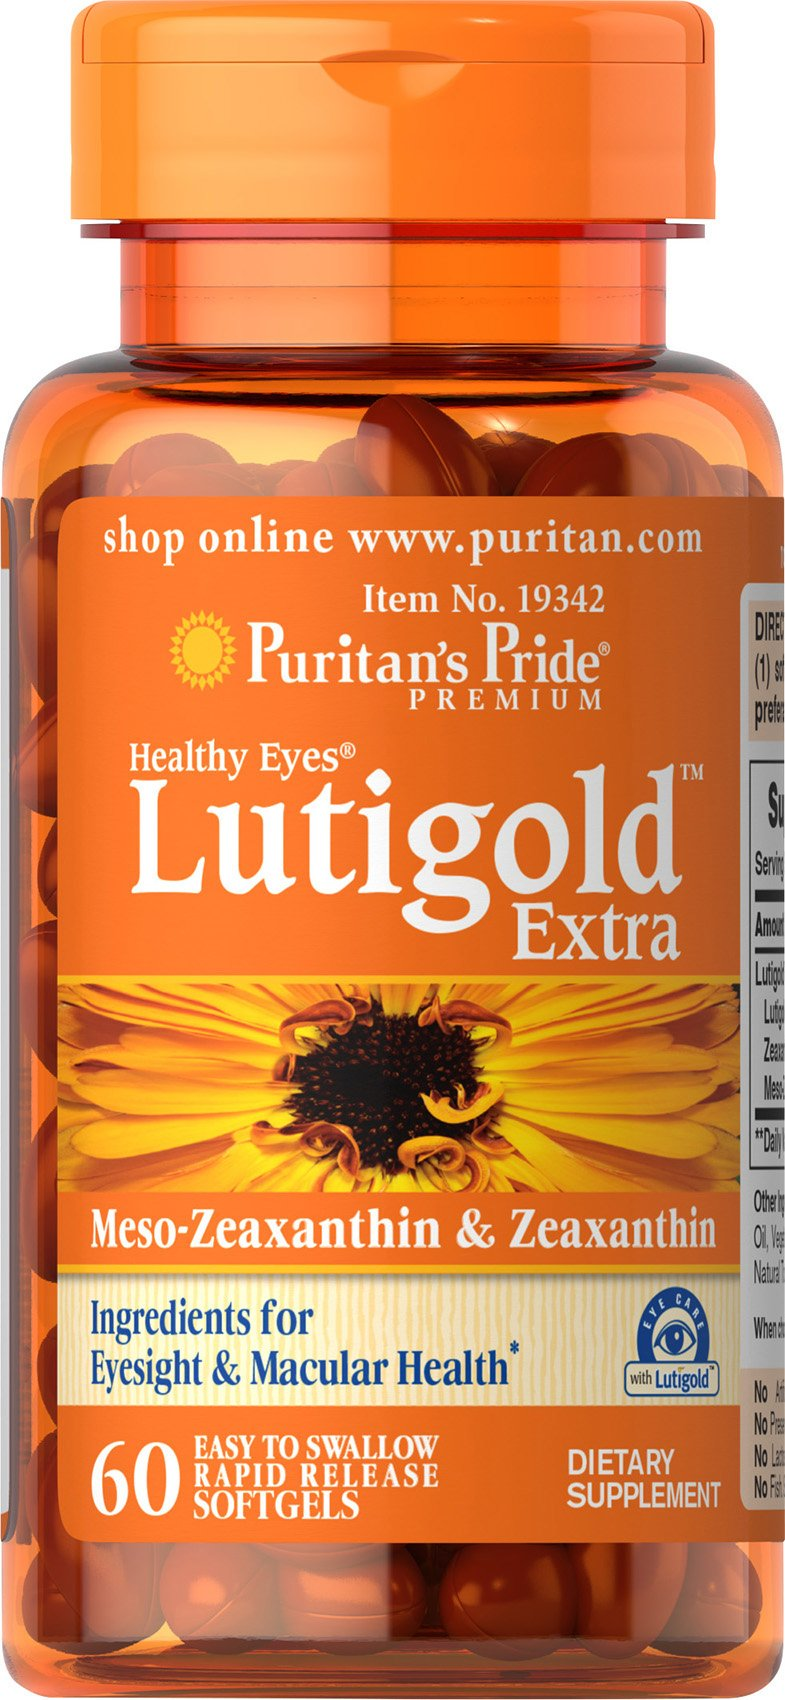 Puritan's Pride Healthy Eyes Lutigold Extra - 60 Soft Gels - Lutein with Meso-zeaxanthin and Zeaxanthin